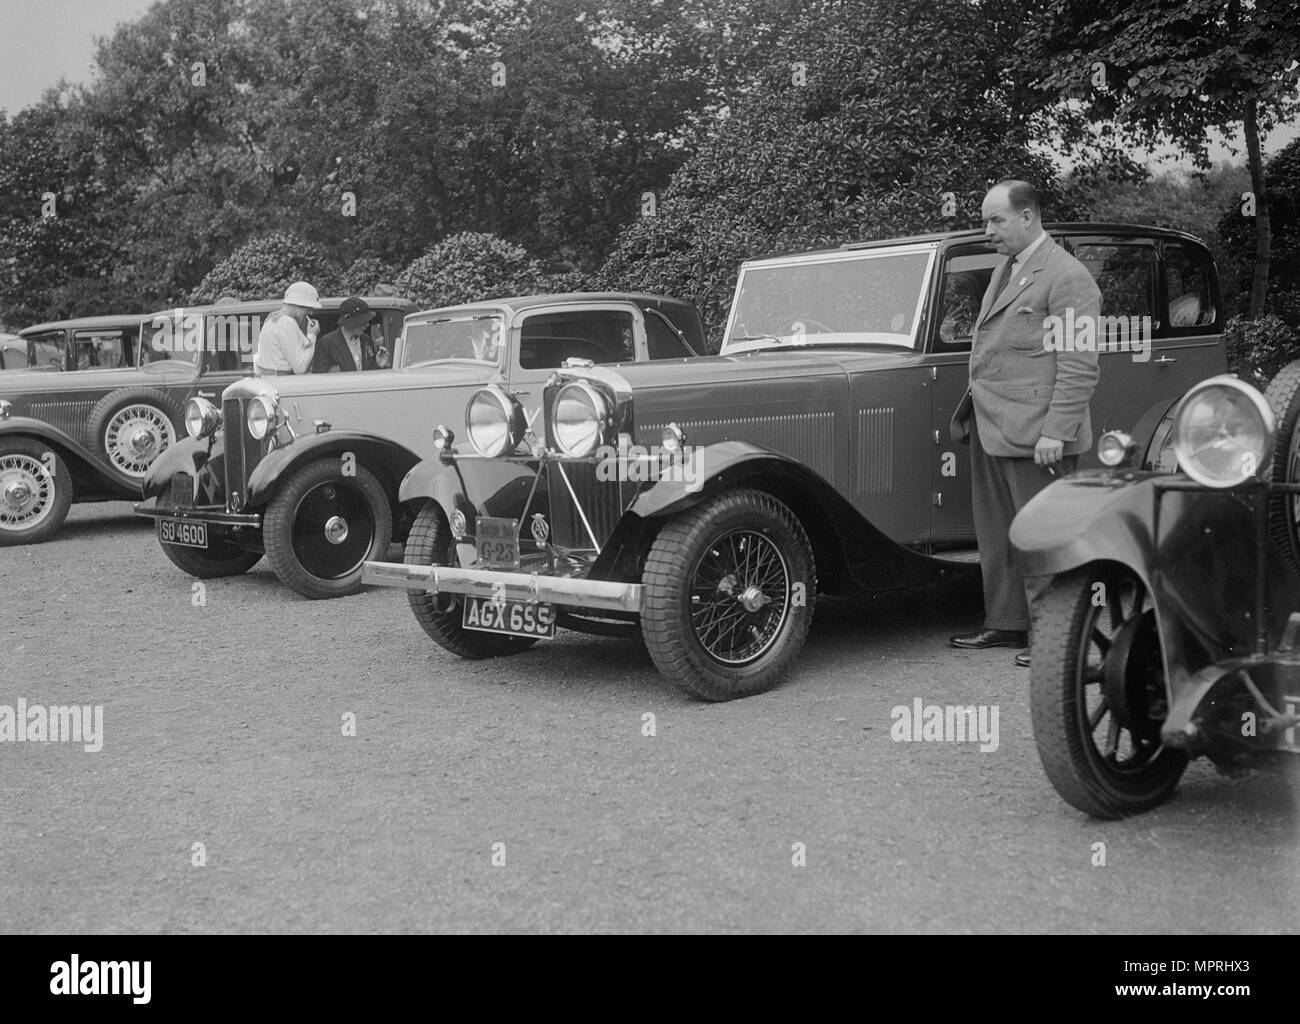 Armstrong-Siddeley, Daimler and Talbot Six Light saloons at the RSAC Scottish Rally, 1933. Artist: Bill Brunell. - Stock Image